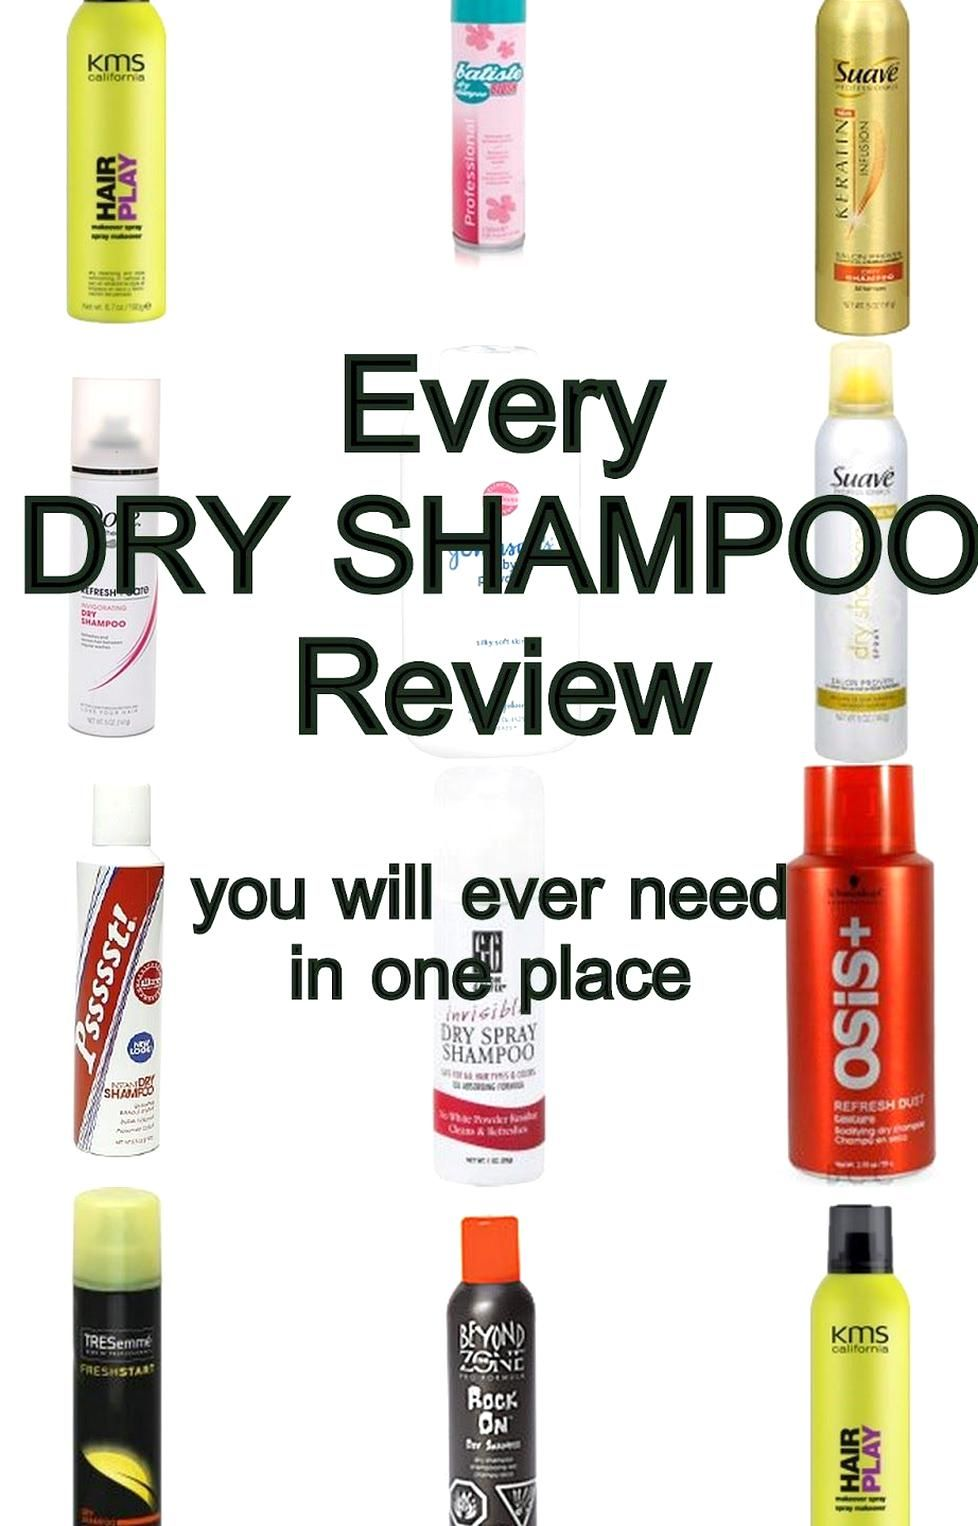 Dry Shampoo The Best Kept Secret In Hair She Reviews 21 Different Types Of Dry Shampoos Dry Shampoo Shampoo Reviews Suave Dry Shampoo